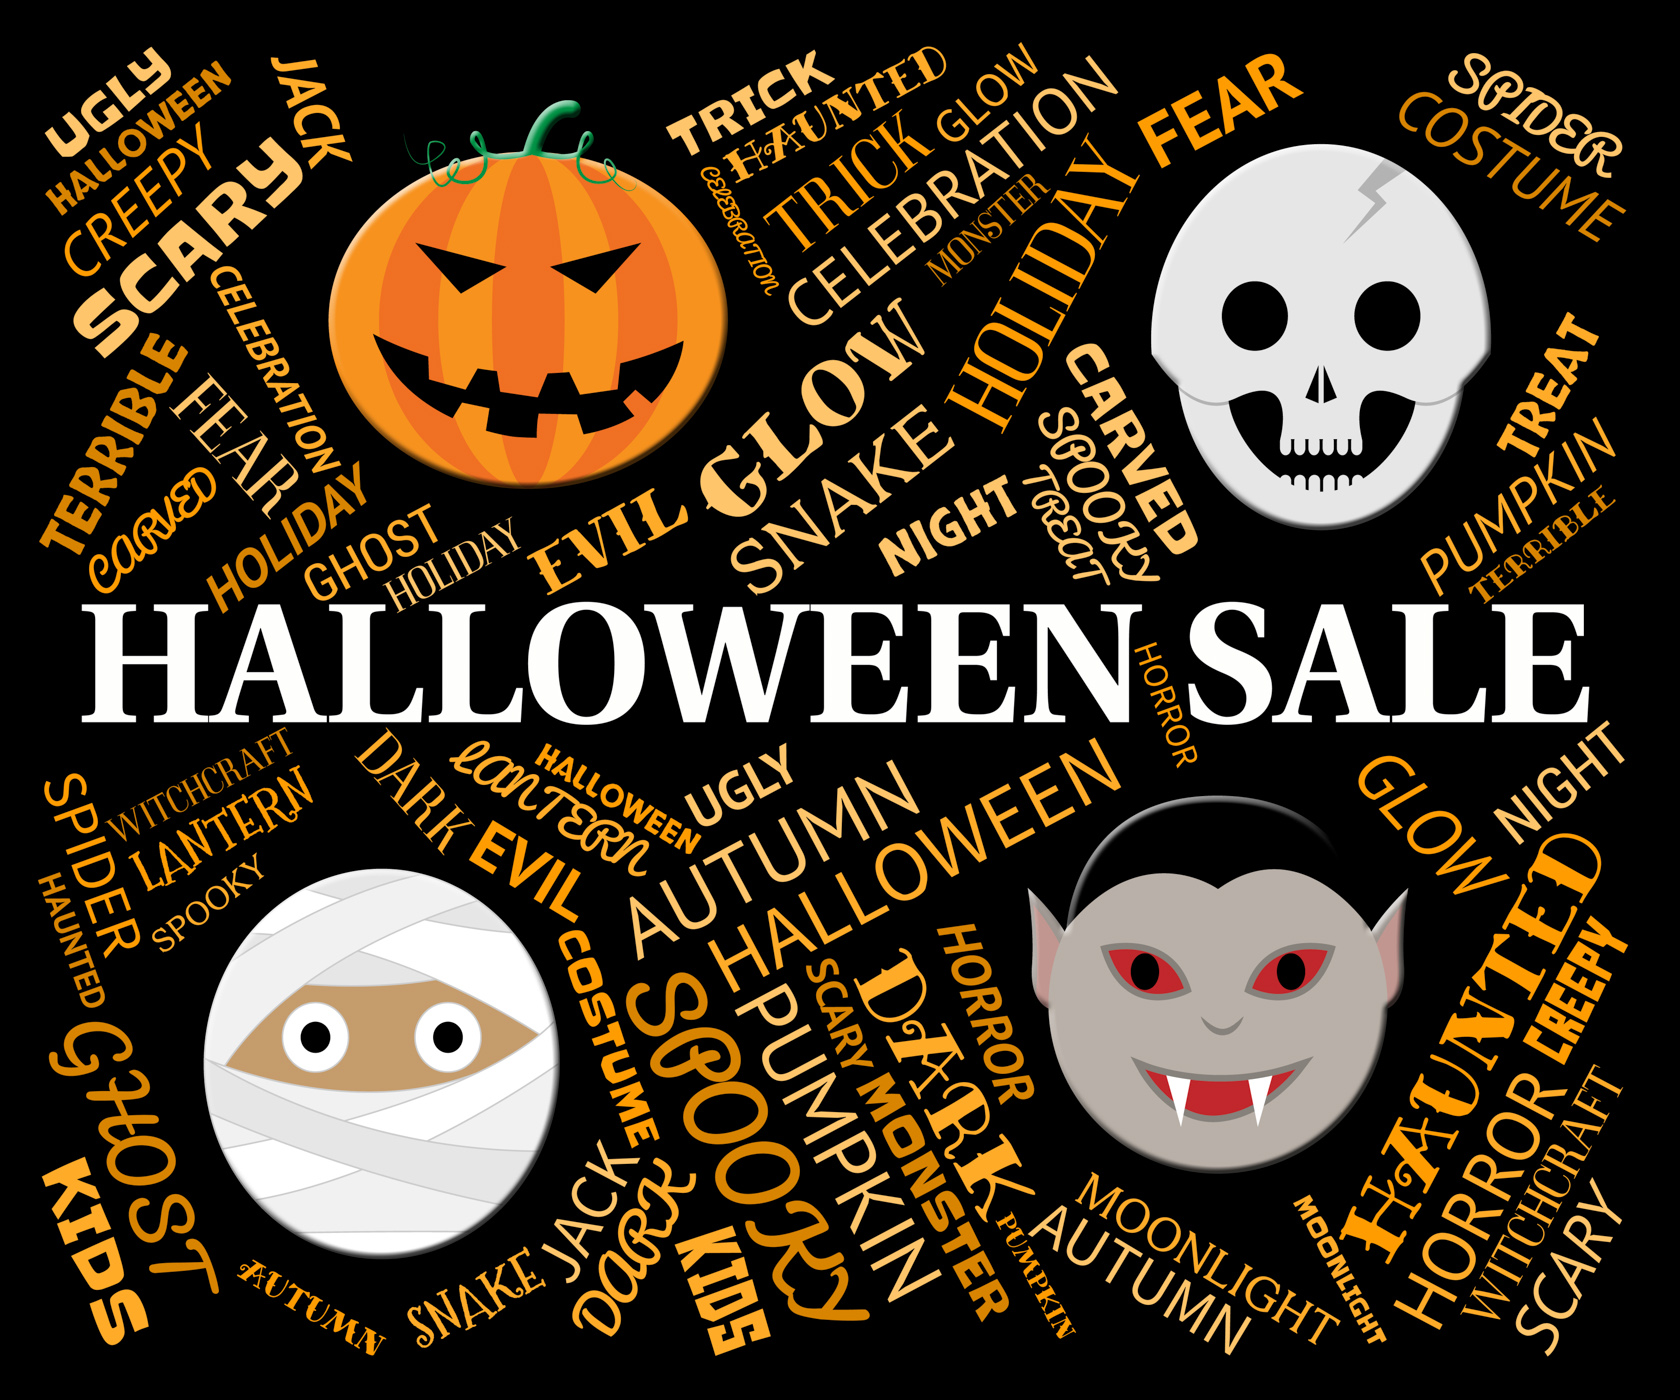 Halloween sale represents trick or treat and celebration photo